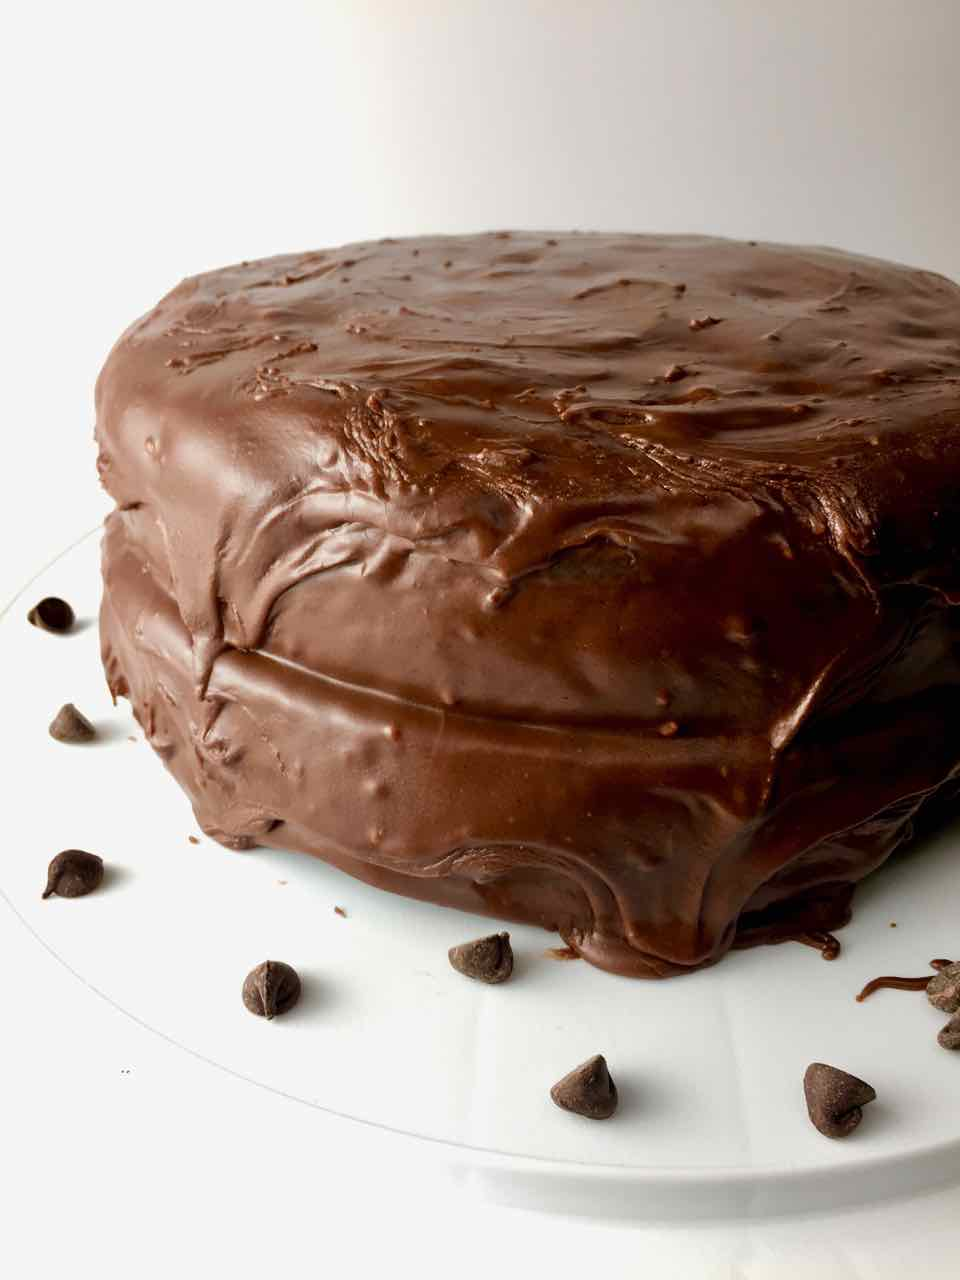 Image of whole foods plant based oil-free chocolate vegan layered birthday cake with vegan frosting